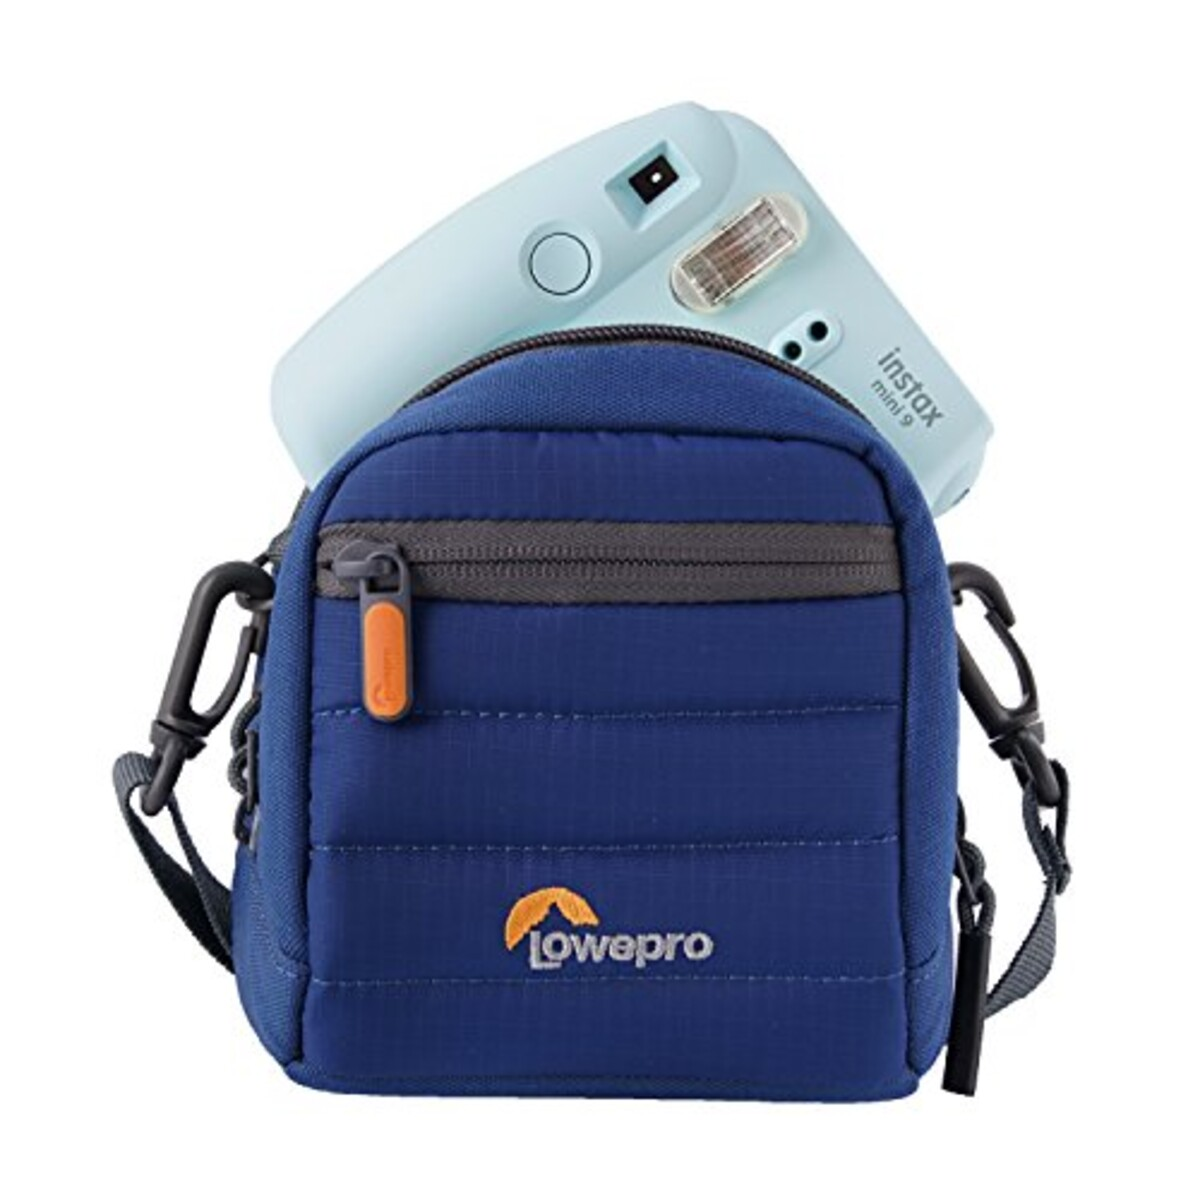 0056035370663-lowepro-tahoe-cs-80-custodia-compatta-blu